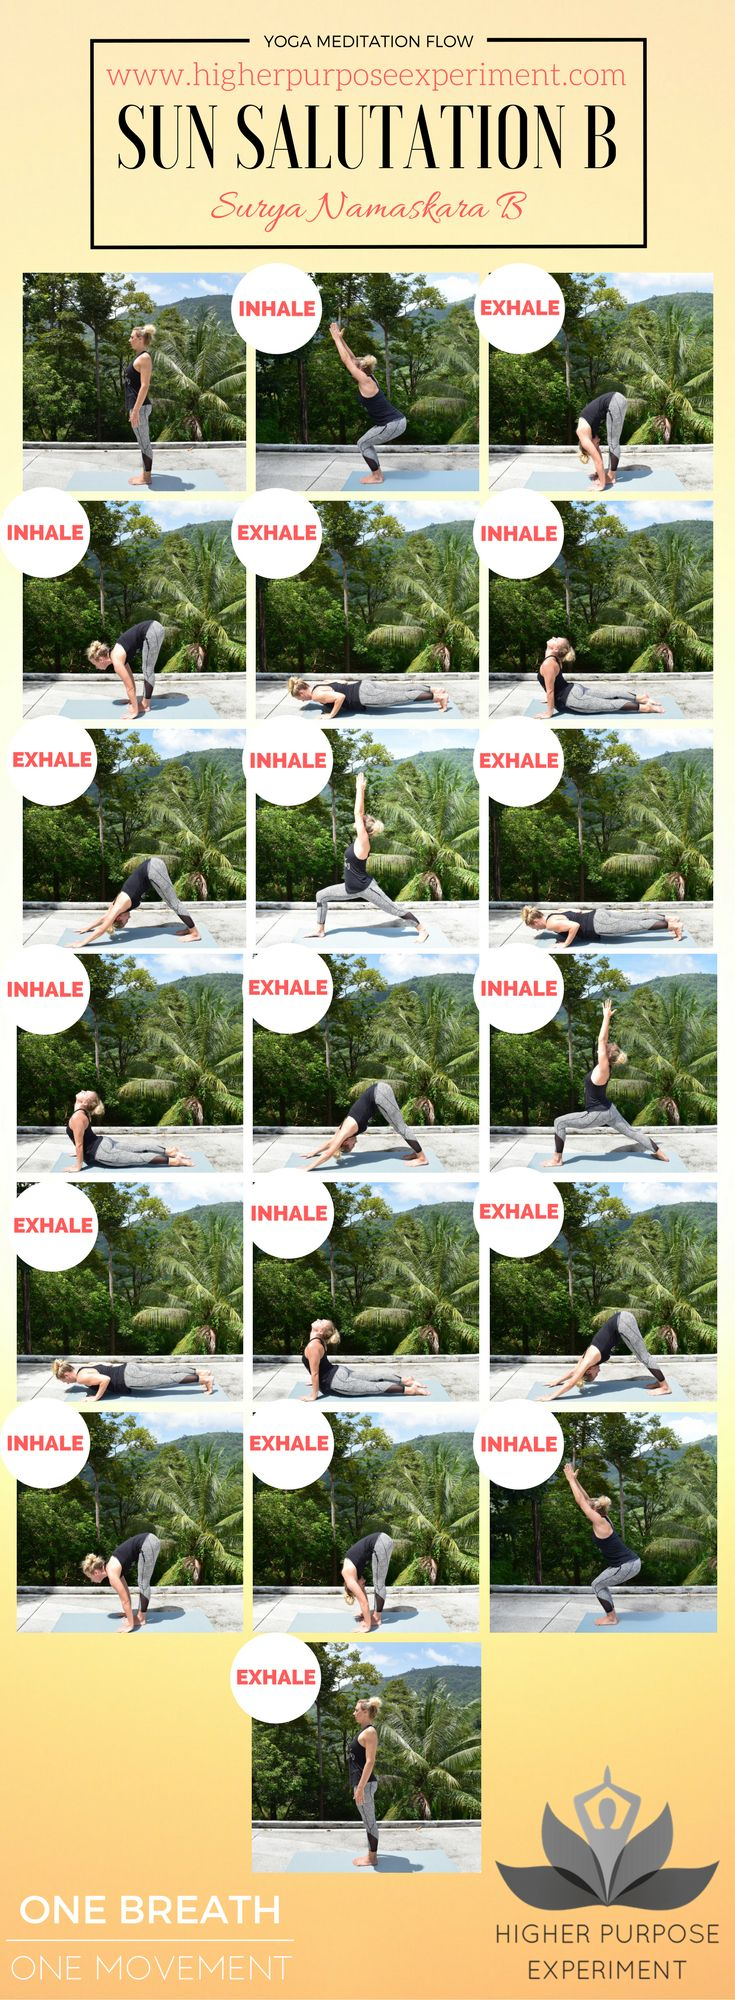 110 best yoga instructor images on pinterest kundalini yoga greet the morning with this sun salutation yoga sequence kristyandbryce Images